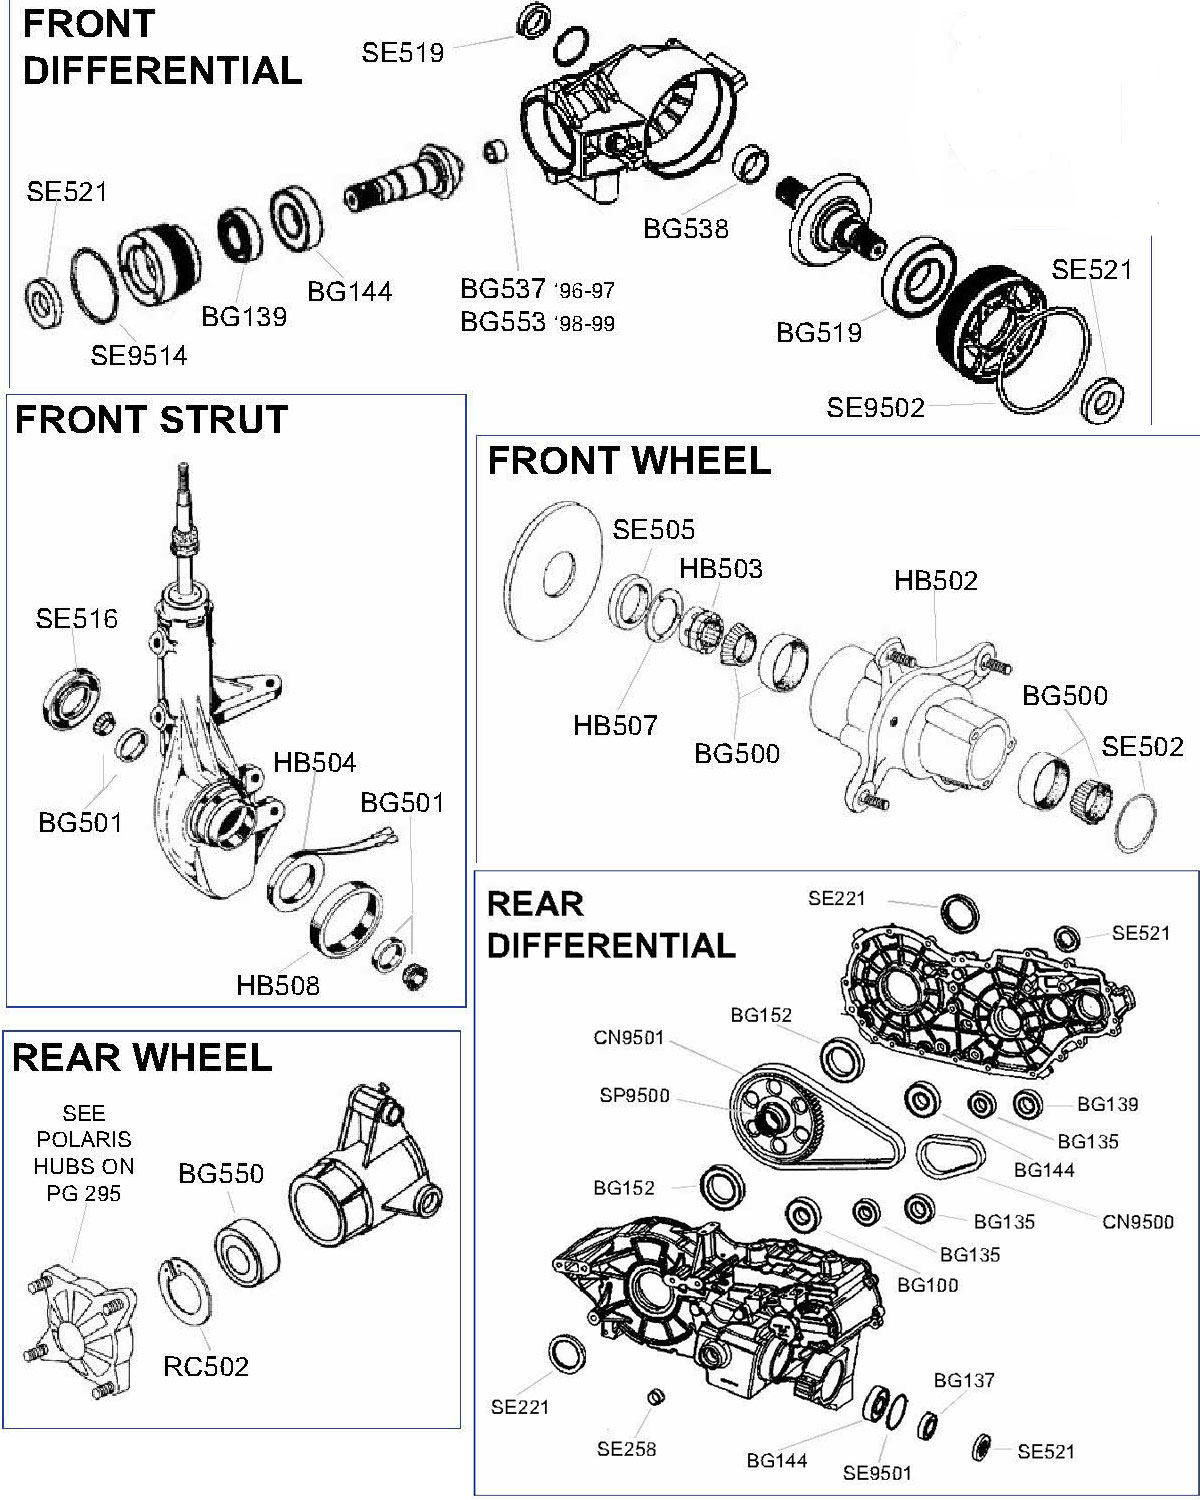 PolarisP7 polaris sportsman parts diagram polaris sportsman 400 wiring diagram at readyjetset.co